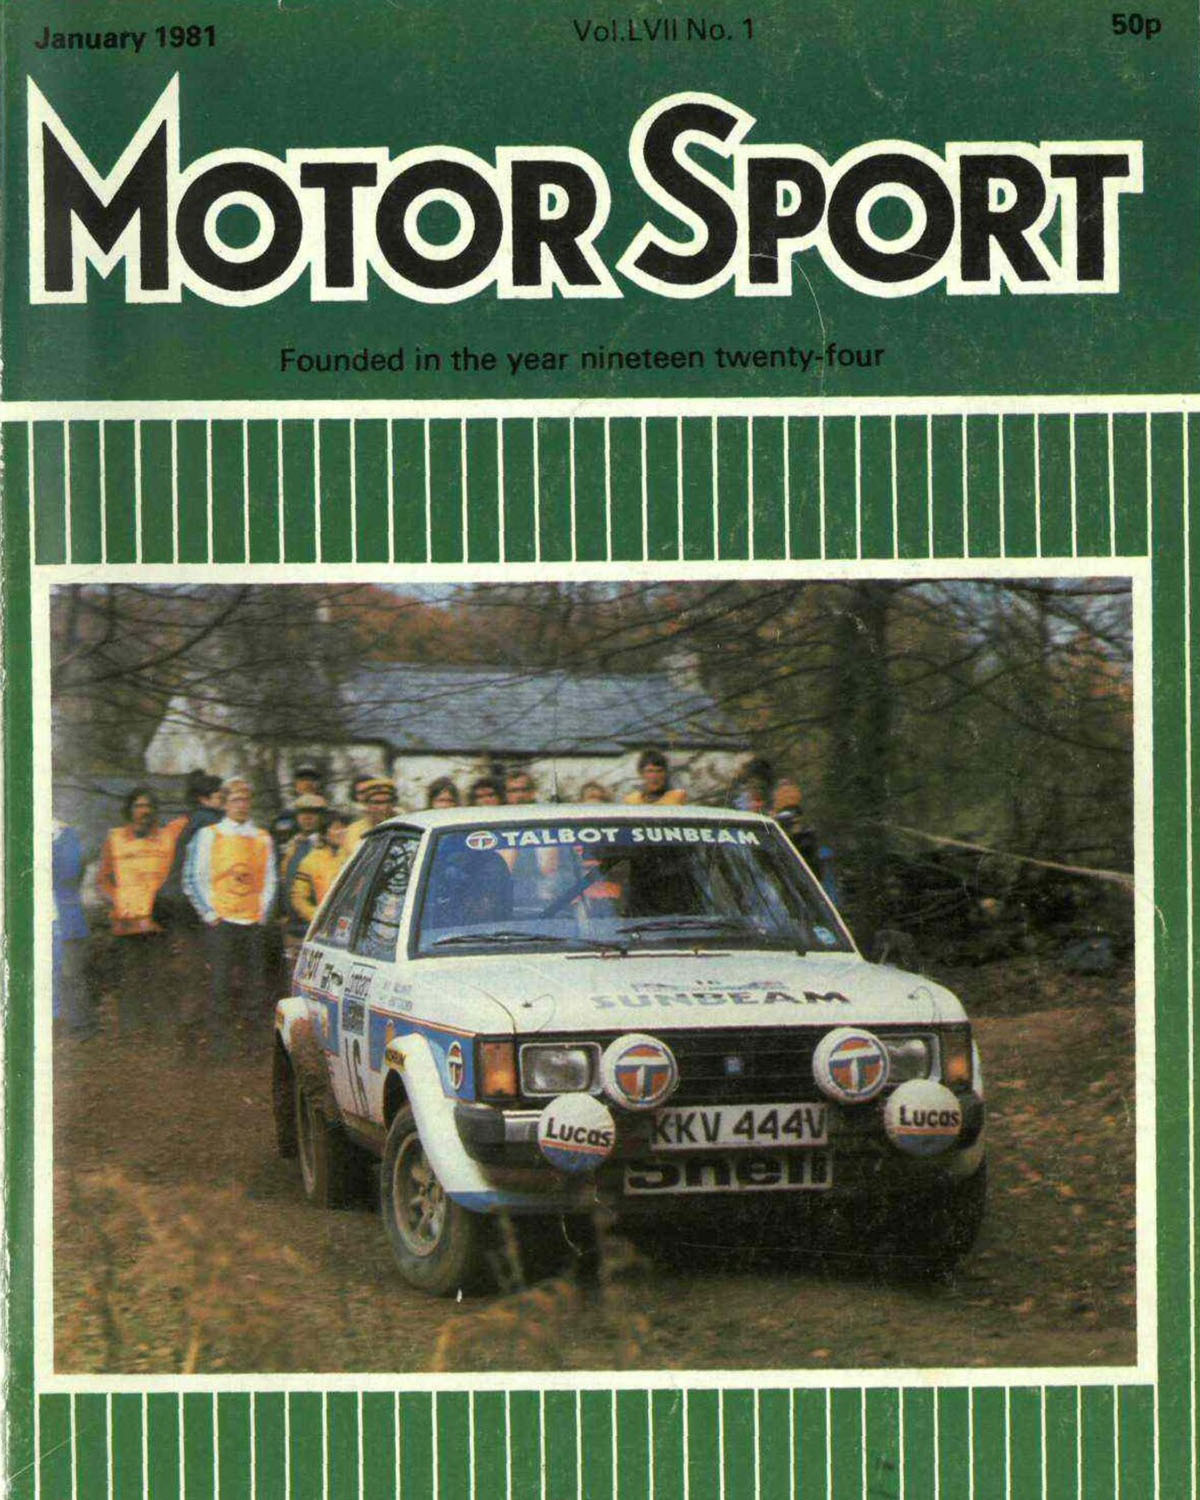 Picture of the Toivonen-White's Talbot Sunbeam Lotus at the 1980 RAC on the front cover of the 1981 January Motorsport magazine